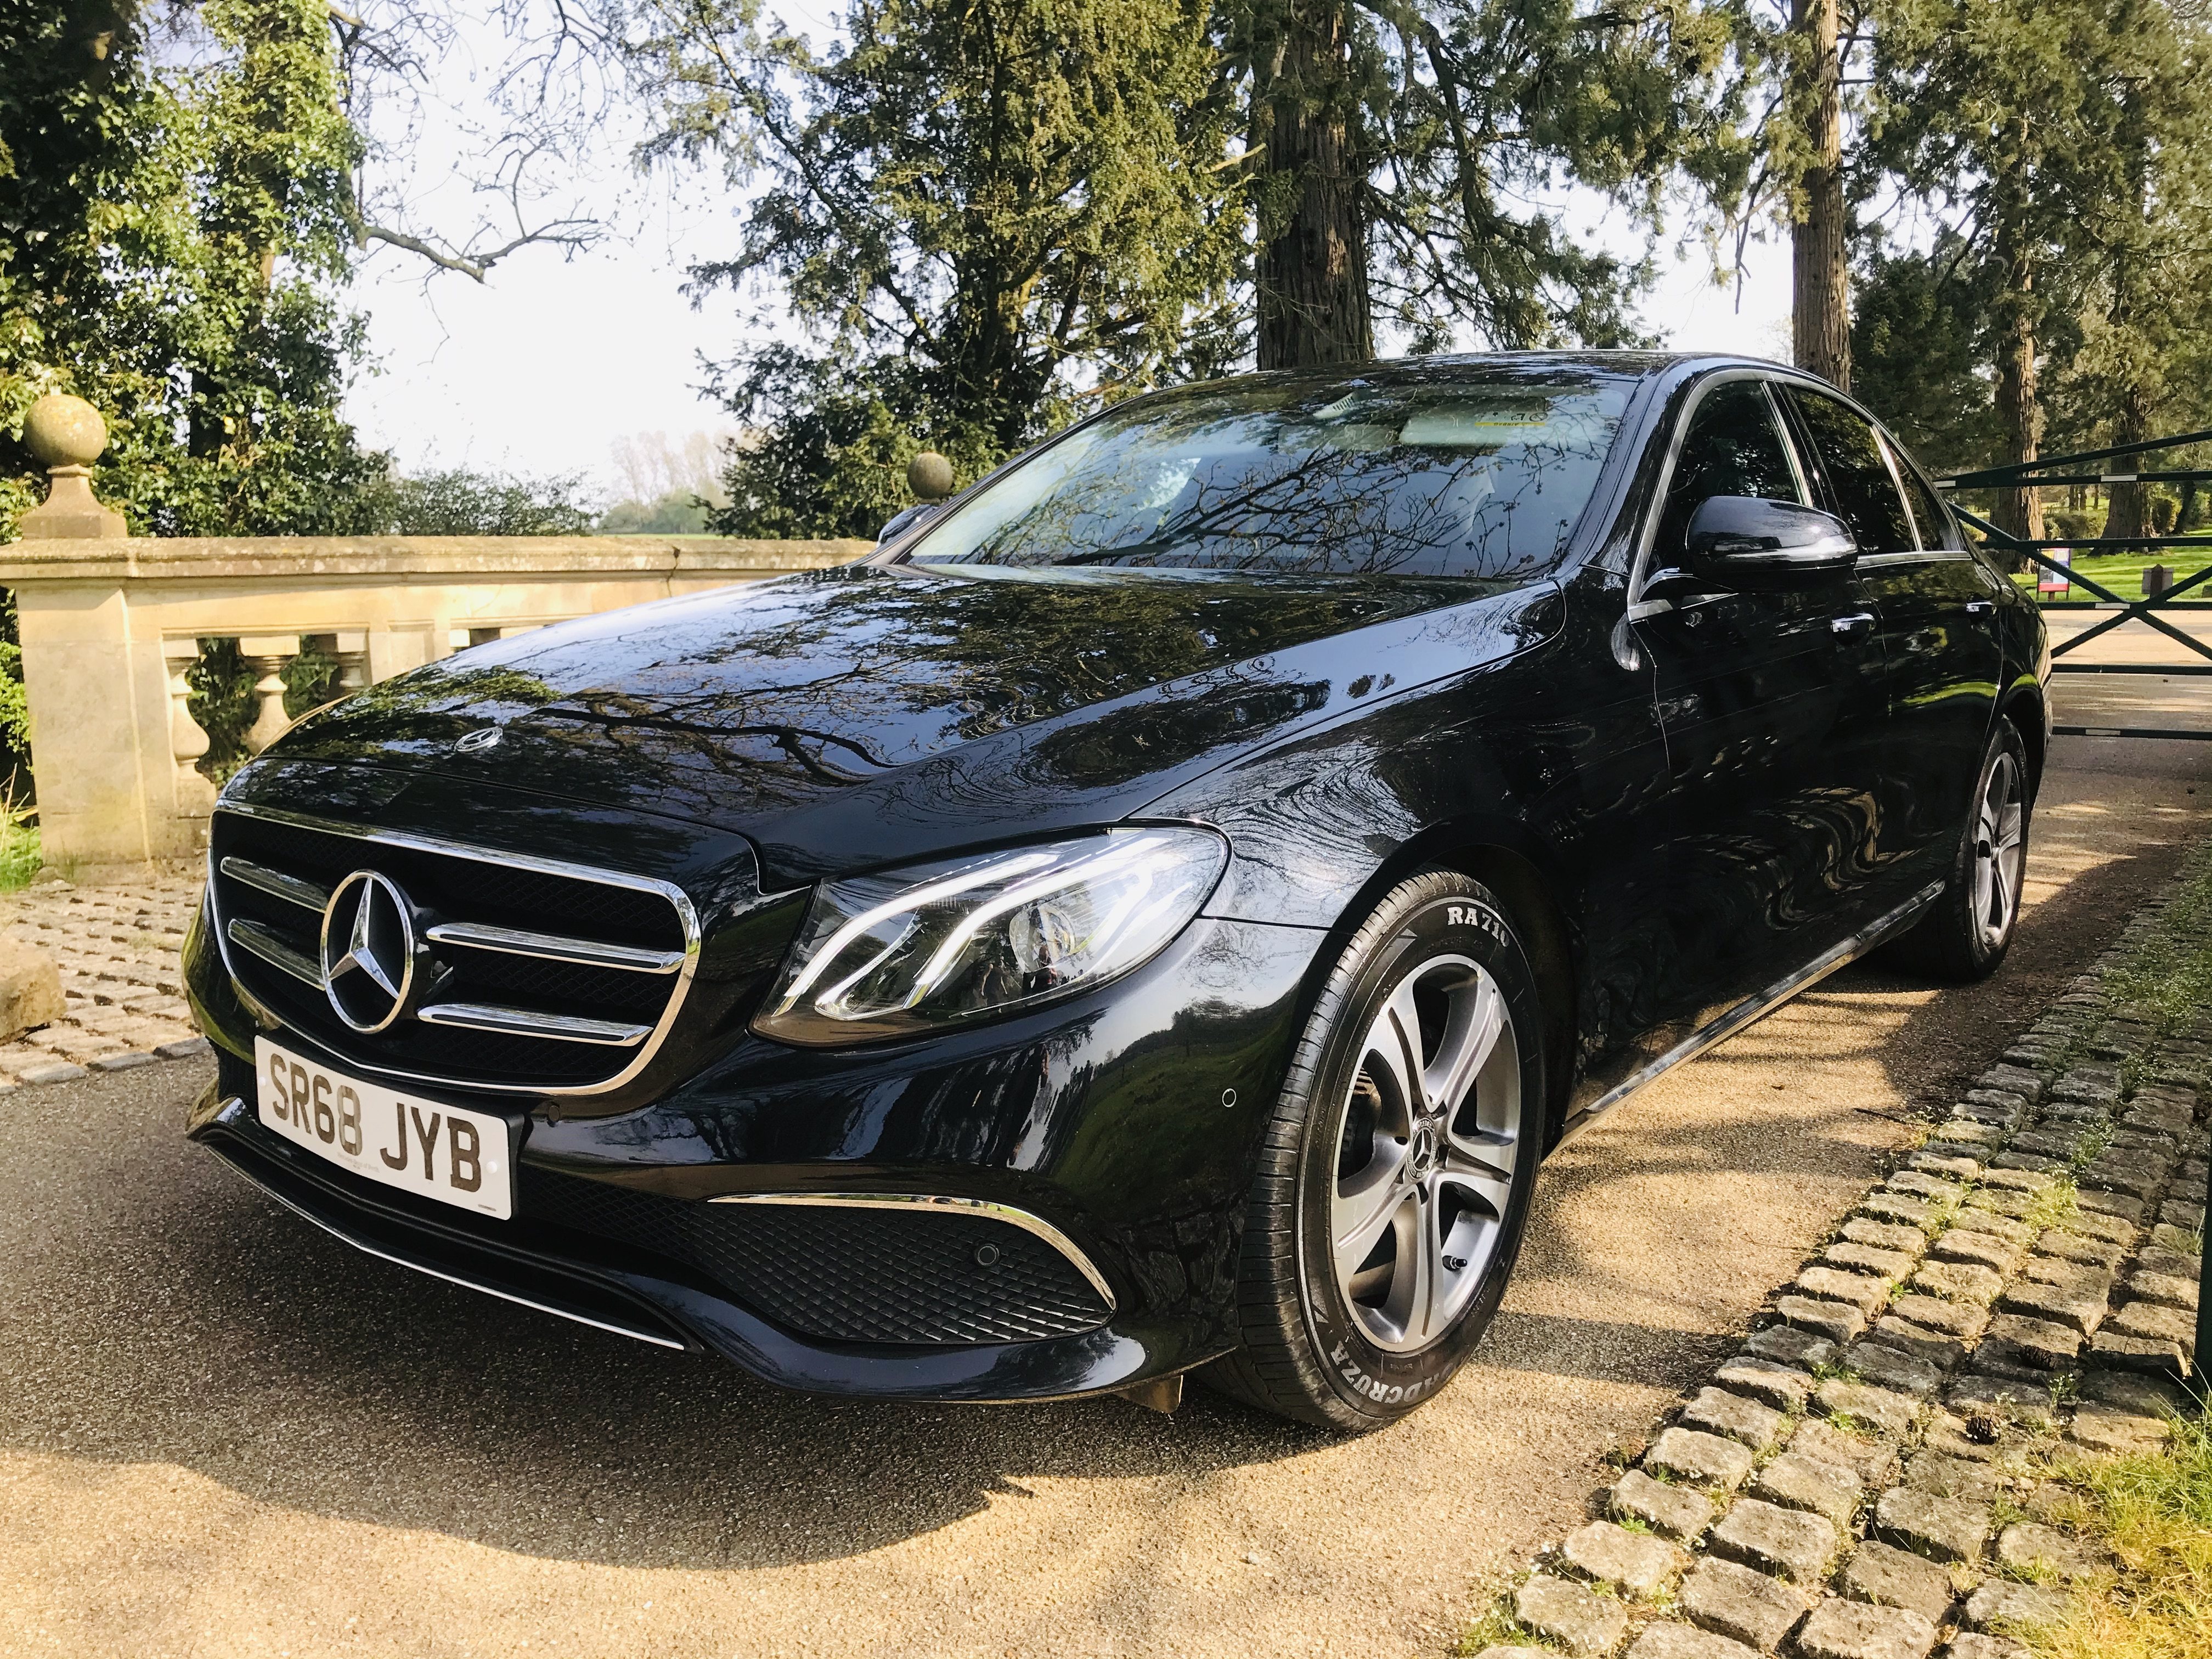 """On Sale MERCEDES E220d """"SPECIAL EQUIPMENT"""" 9G TRONIC (2019 MODEL) 1 OWNER - SAT NAV - LEATHER - WOW! - Image 5 of 26"""